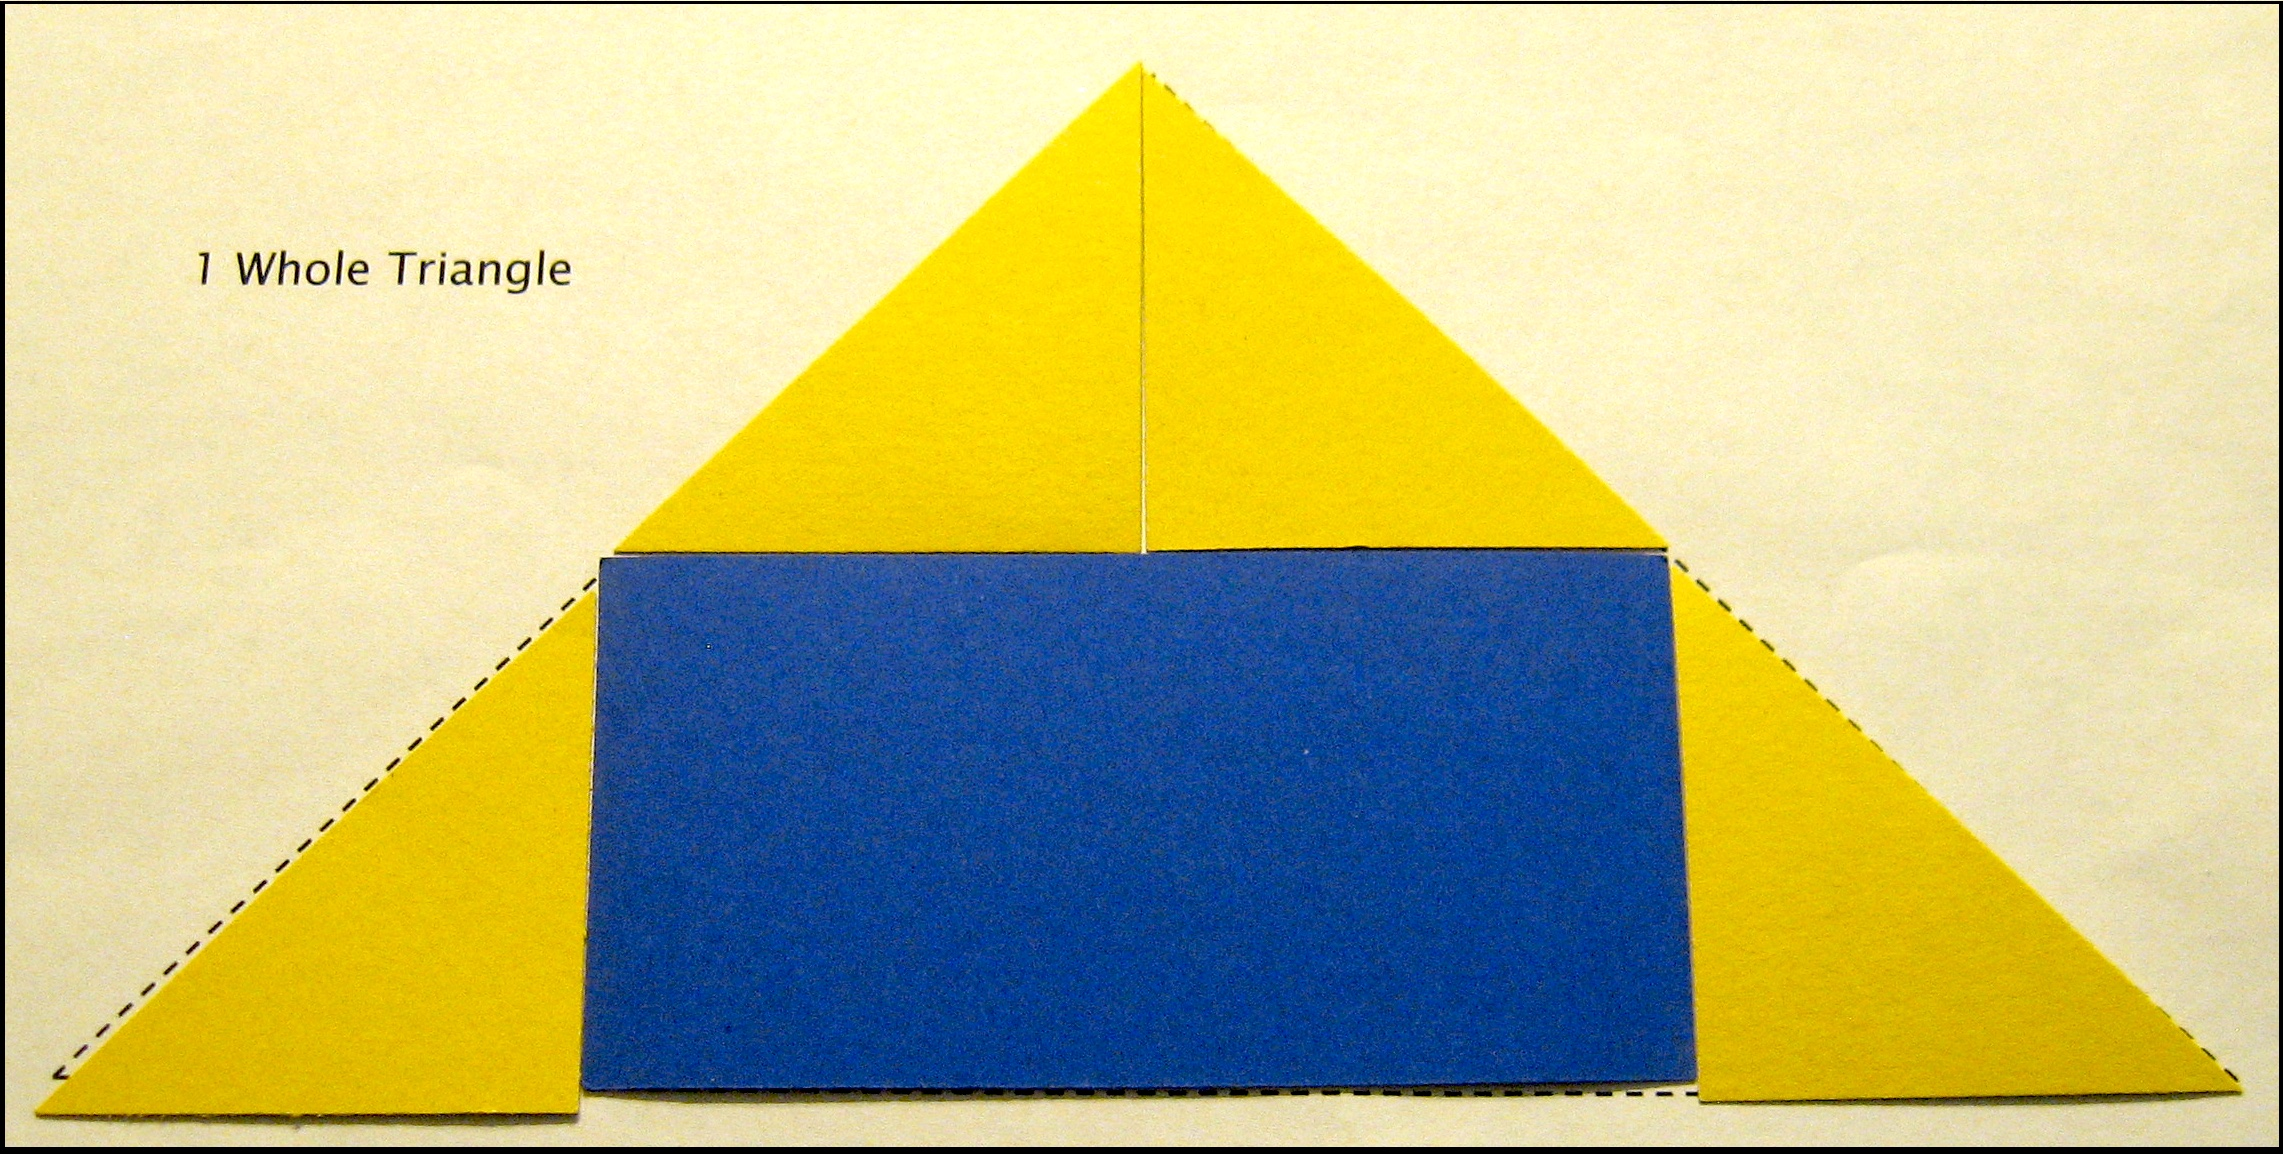 Whole triangle tiled 7 23 19.jpg